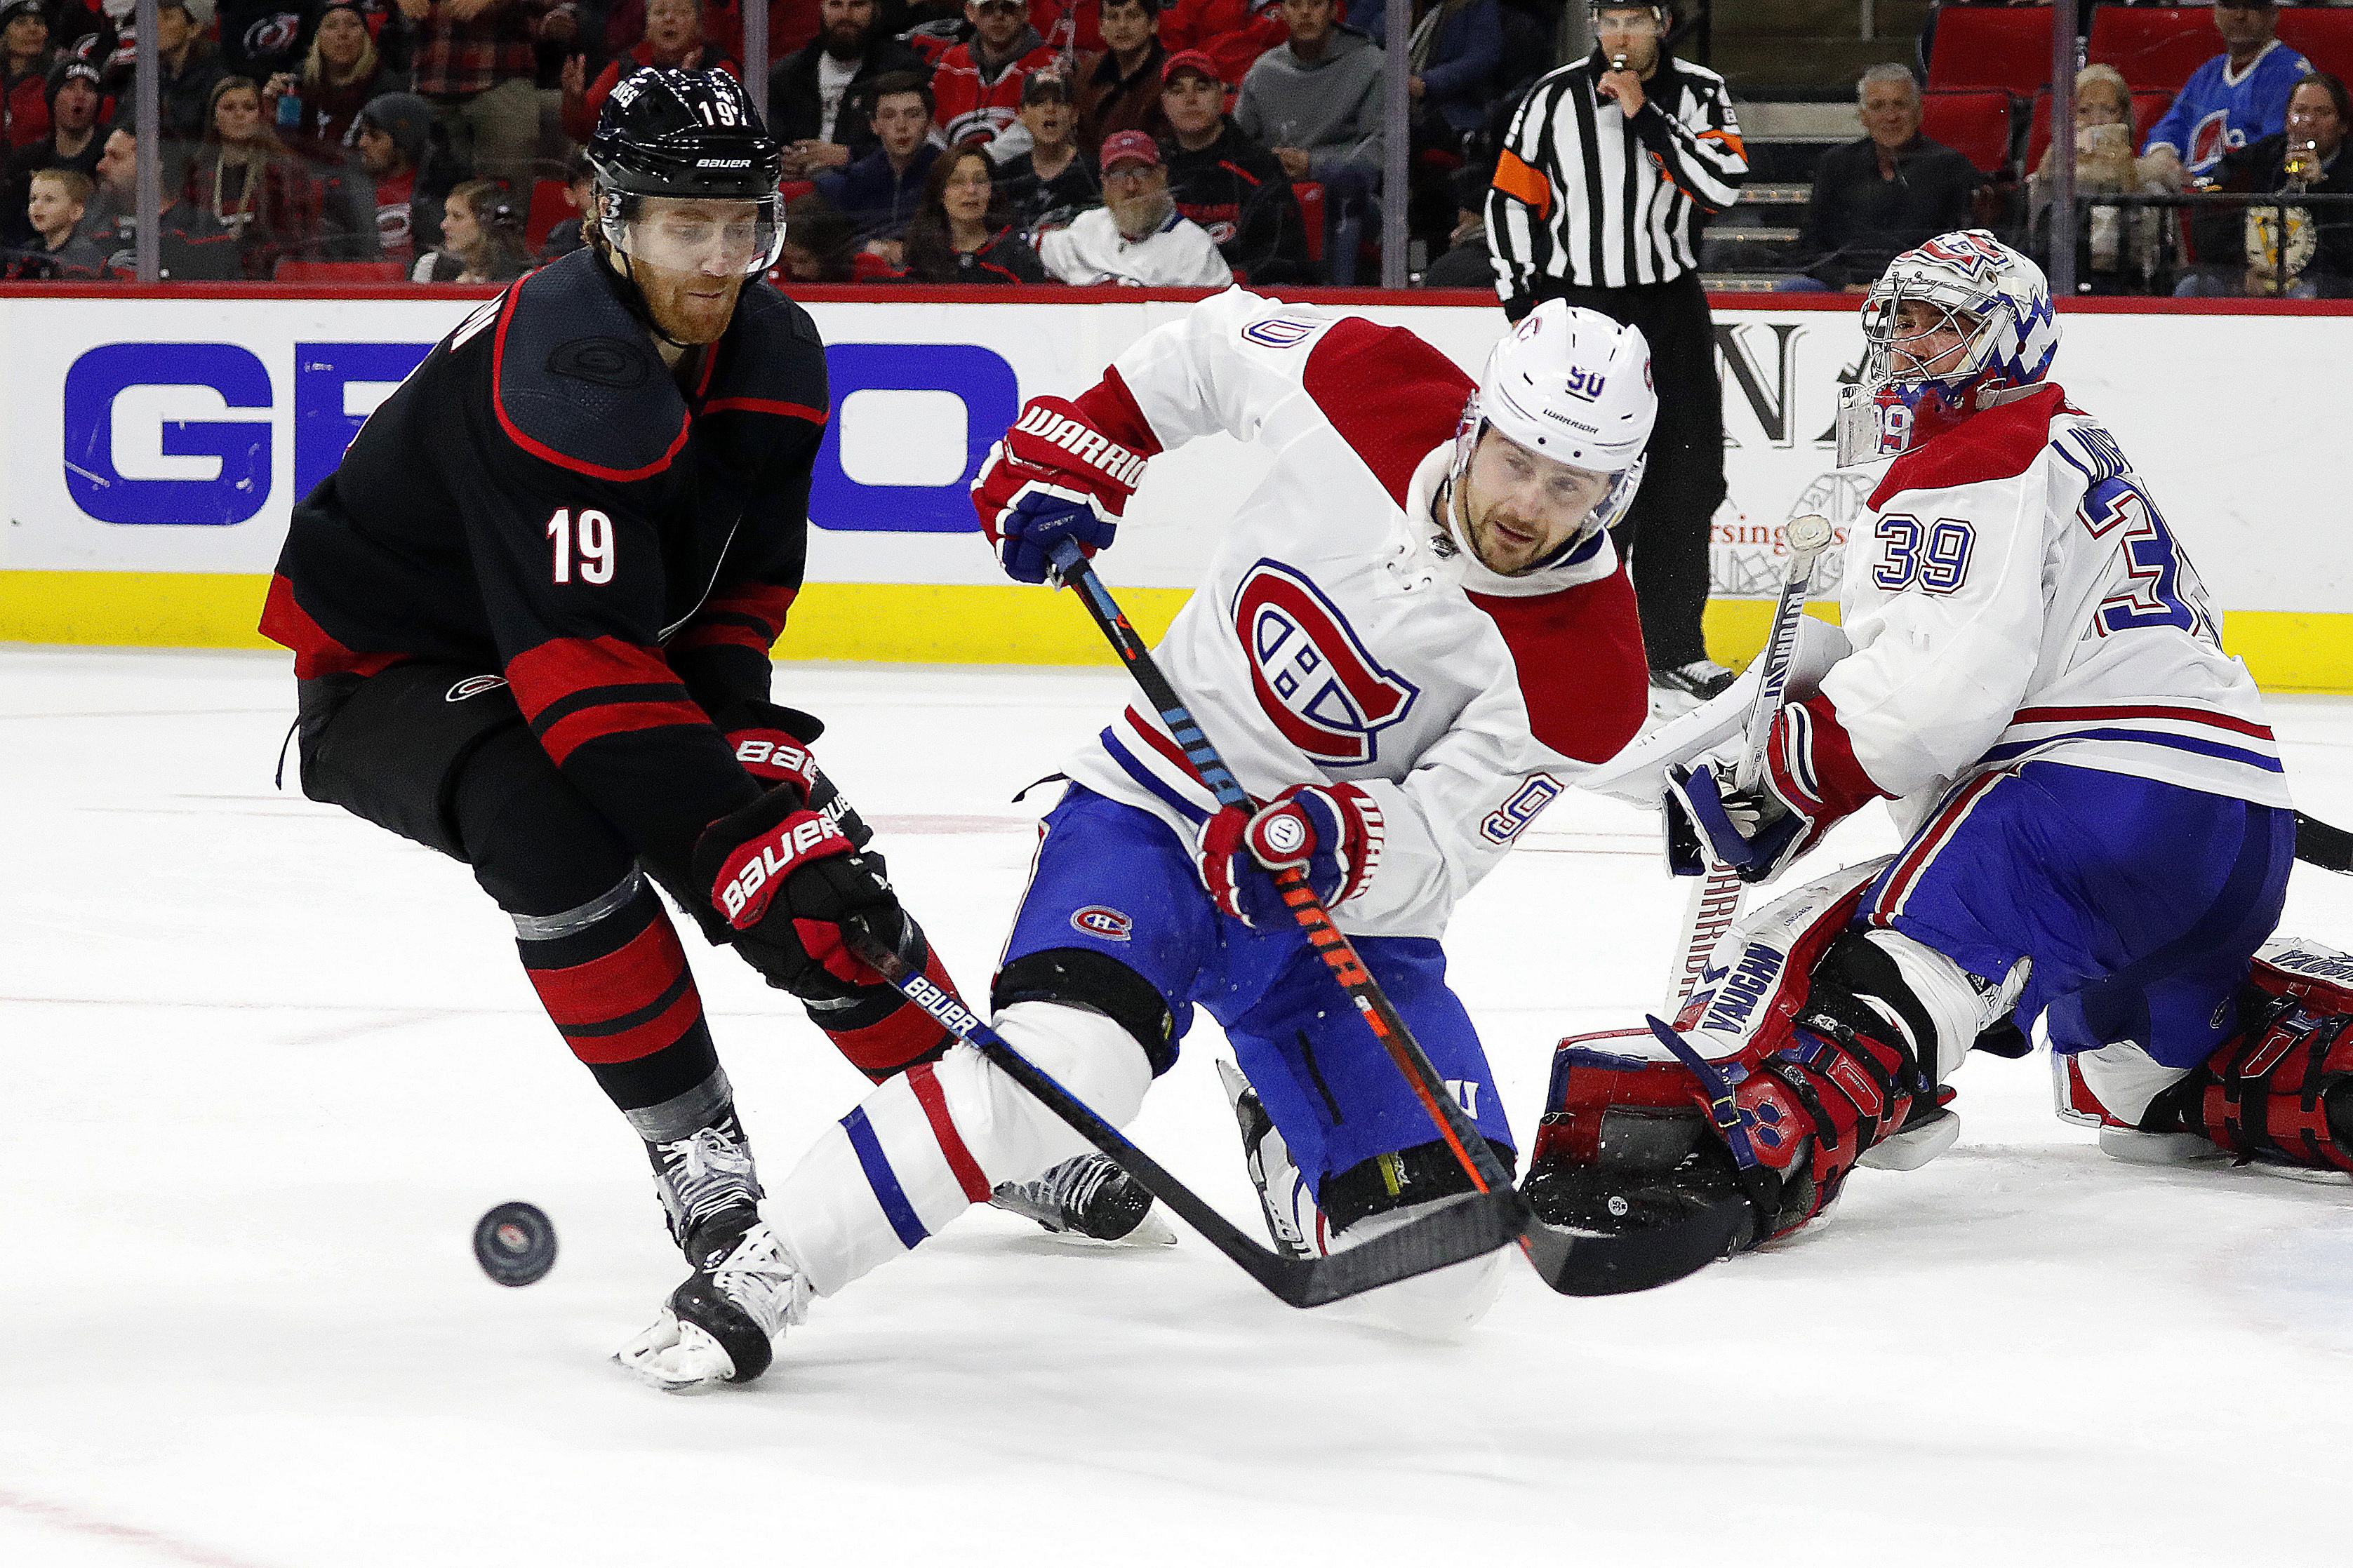 Haula helps Hurricanes earn 3-1 win over Montreal